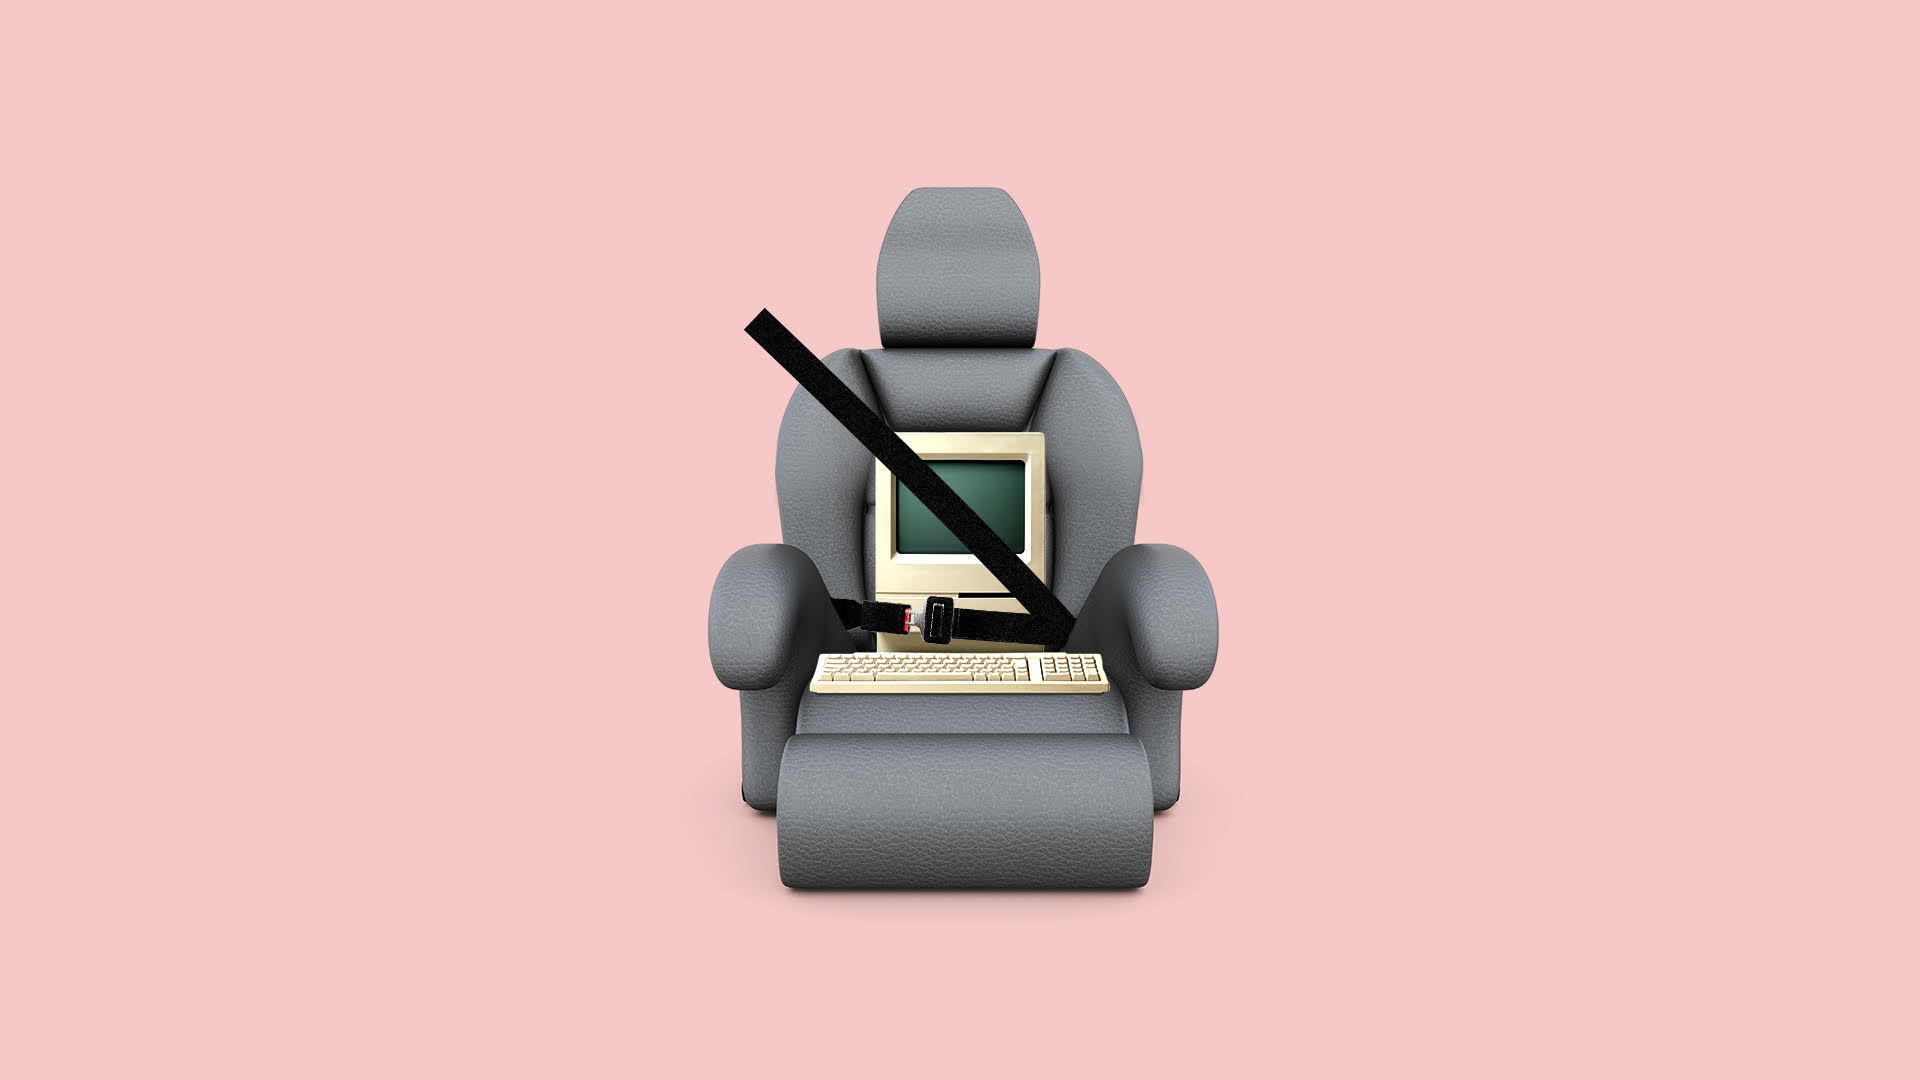 Illustration of a computer wearing a seat belt